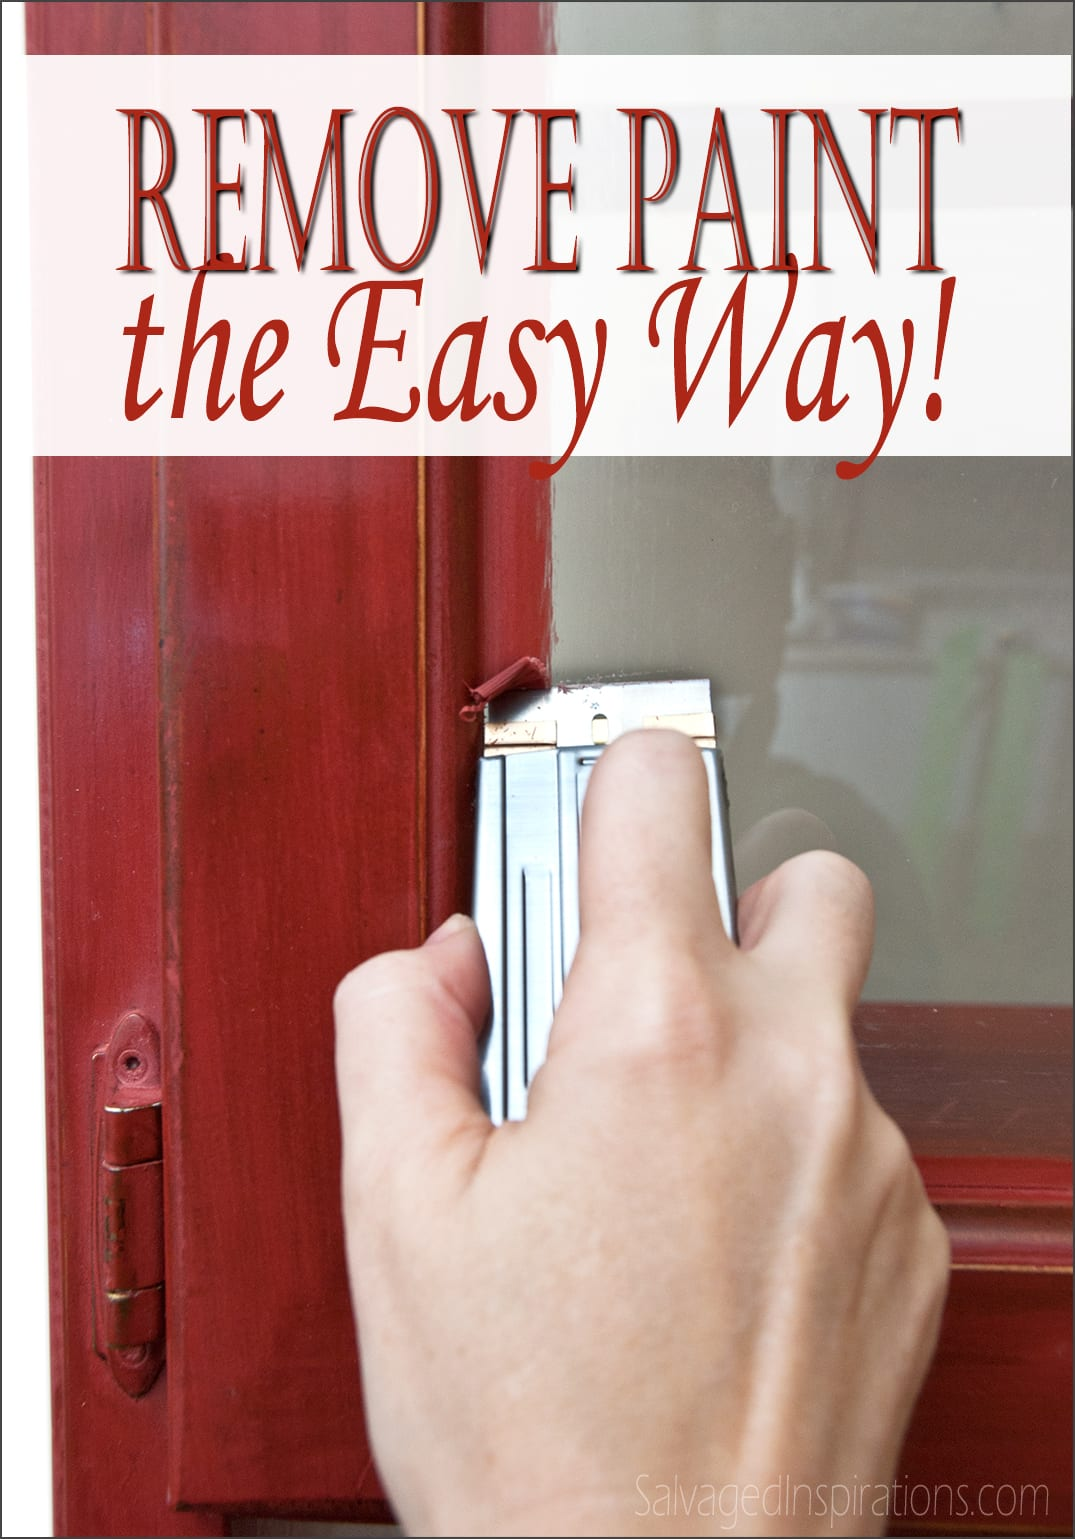 Quick-Tip-Tuesday: How To Remove Paint From Glass… The Fast and Easy Way